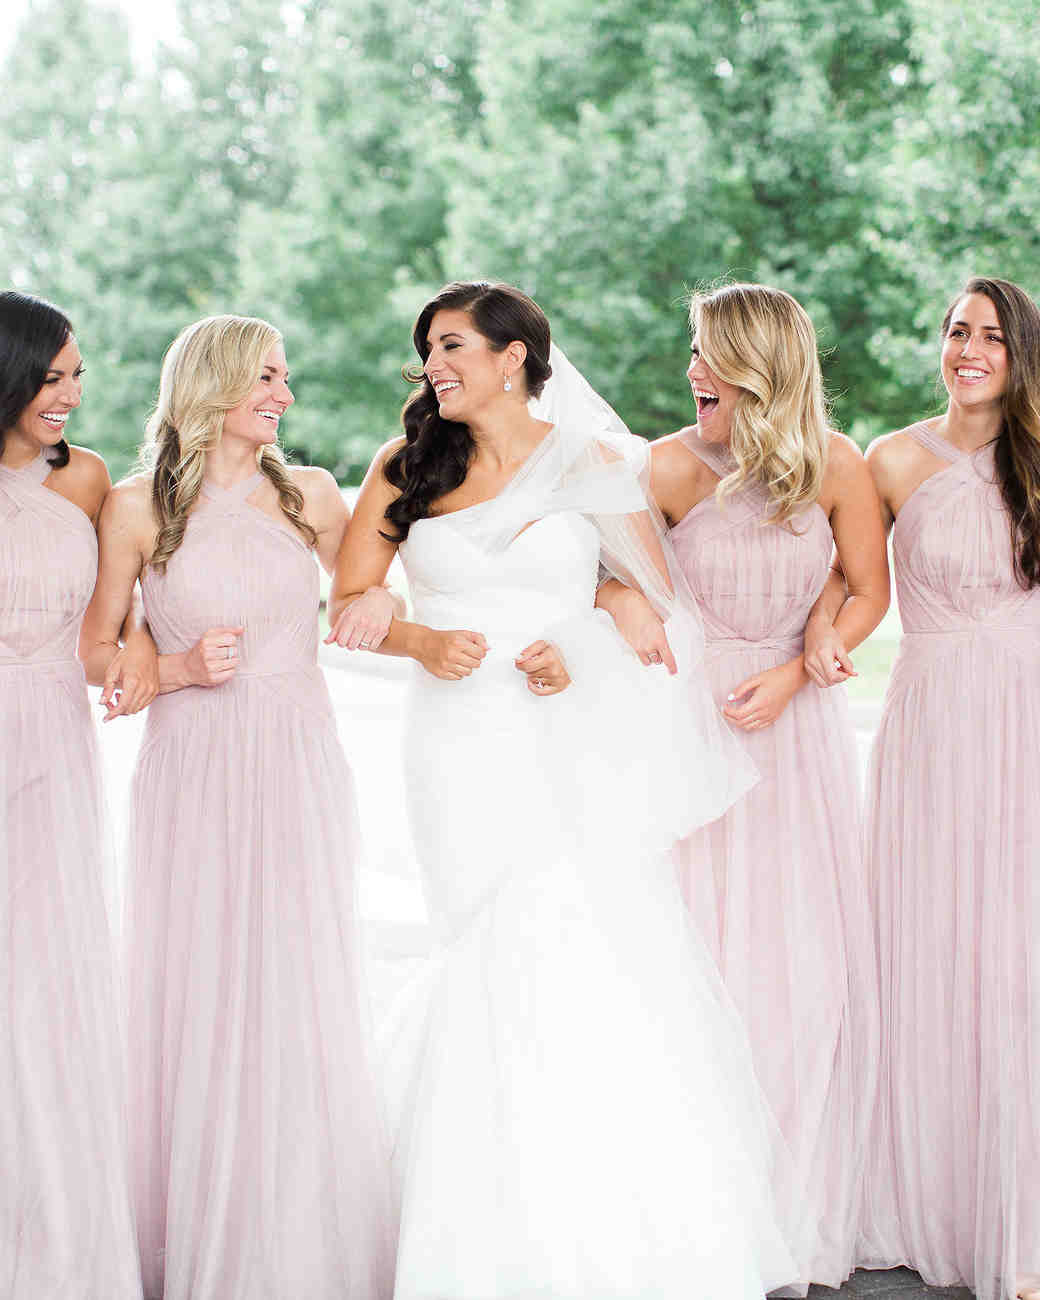 rose-quartz-bridesmaid-dresses-0216.jpg